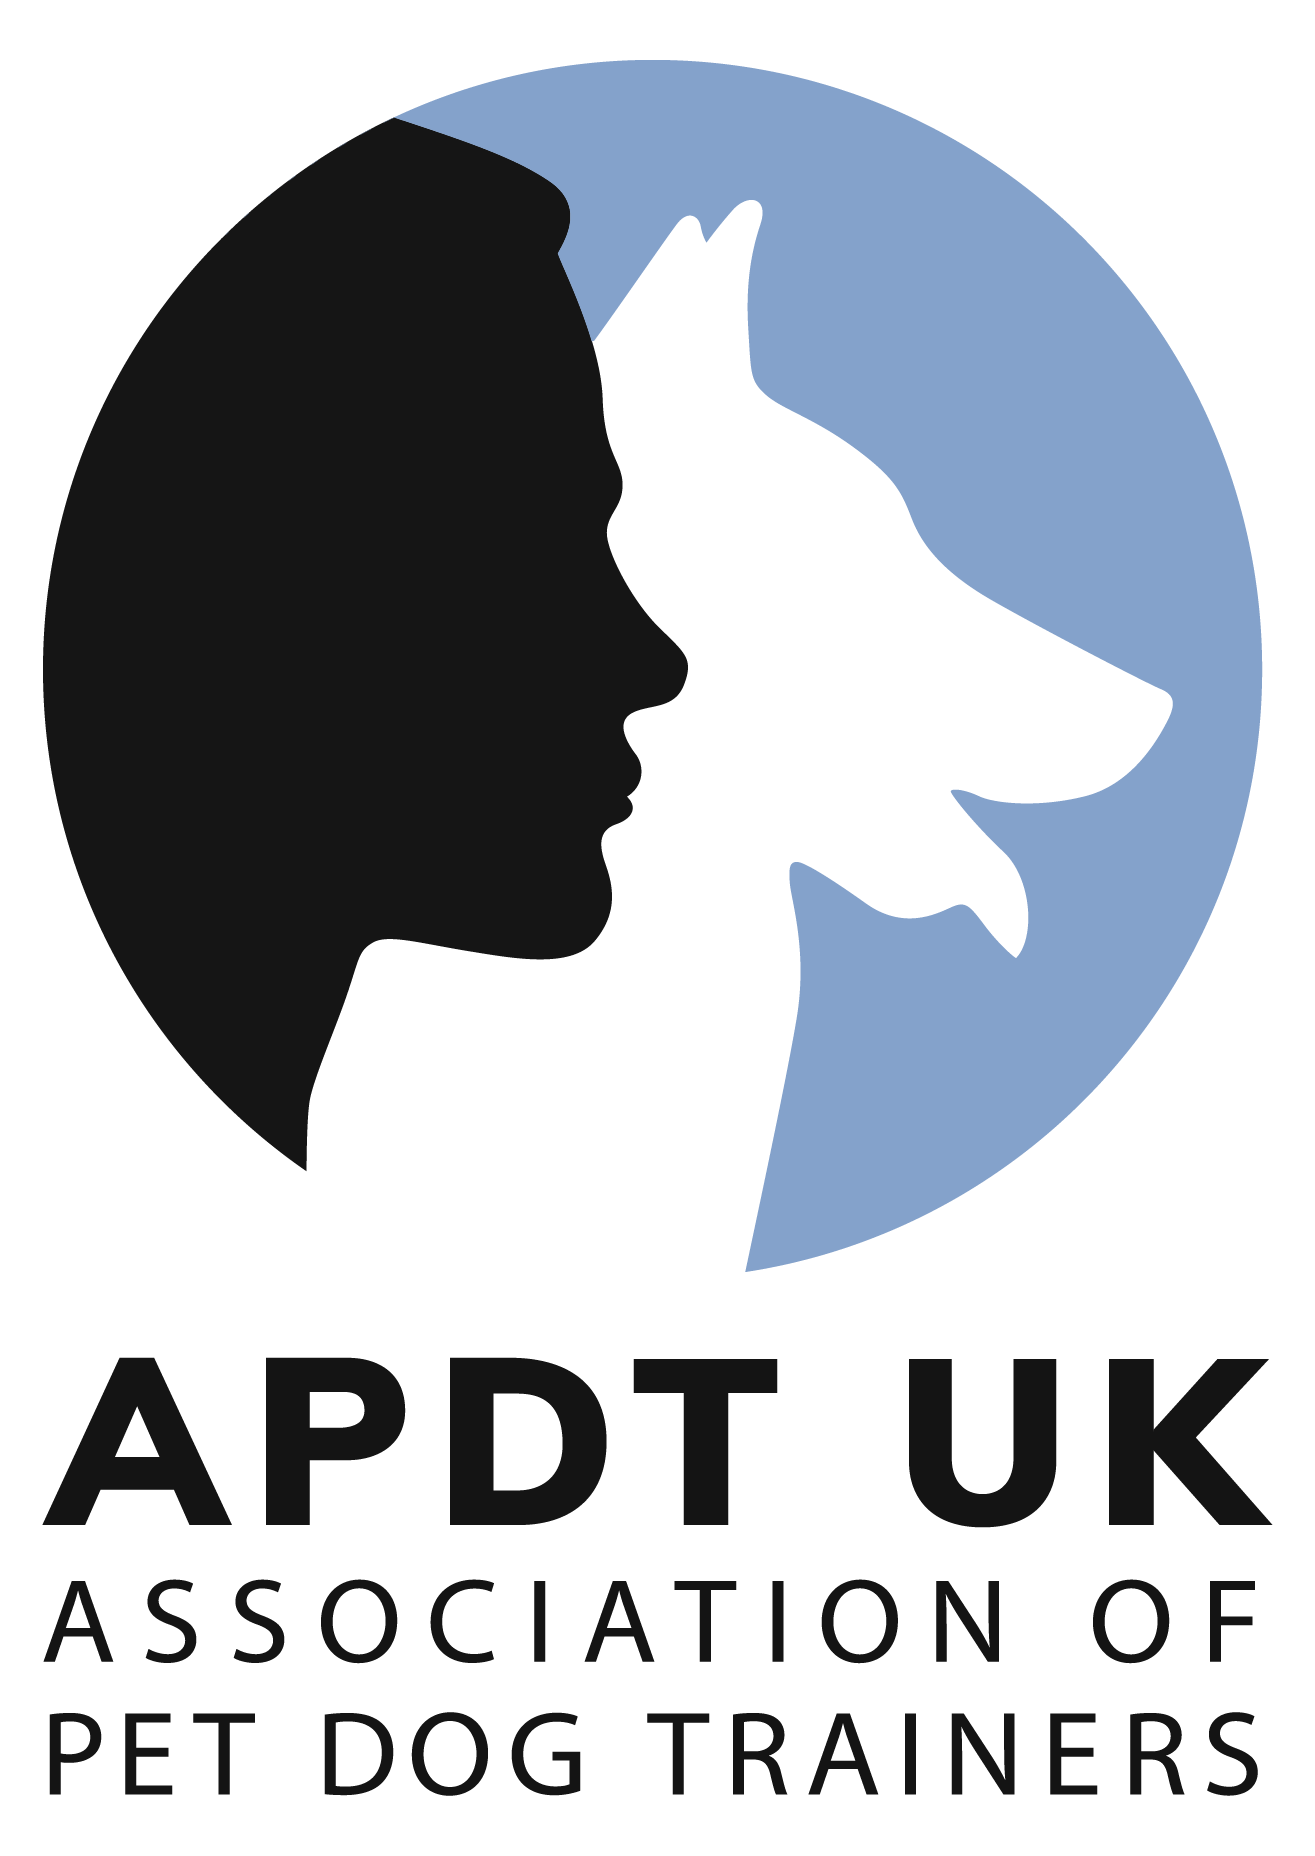 Adam Tew is a member of the APDT(Association of Pet Dog Trainers)